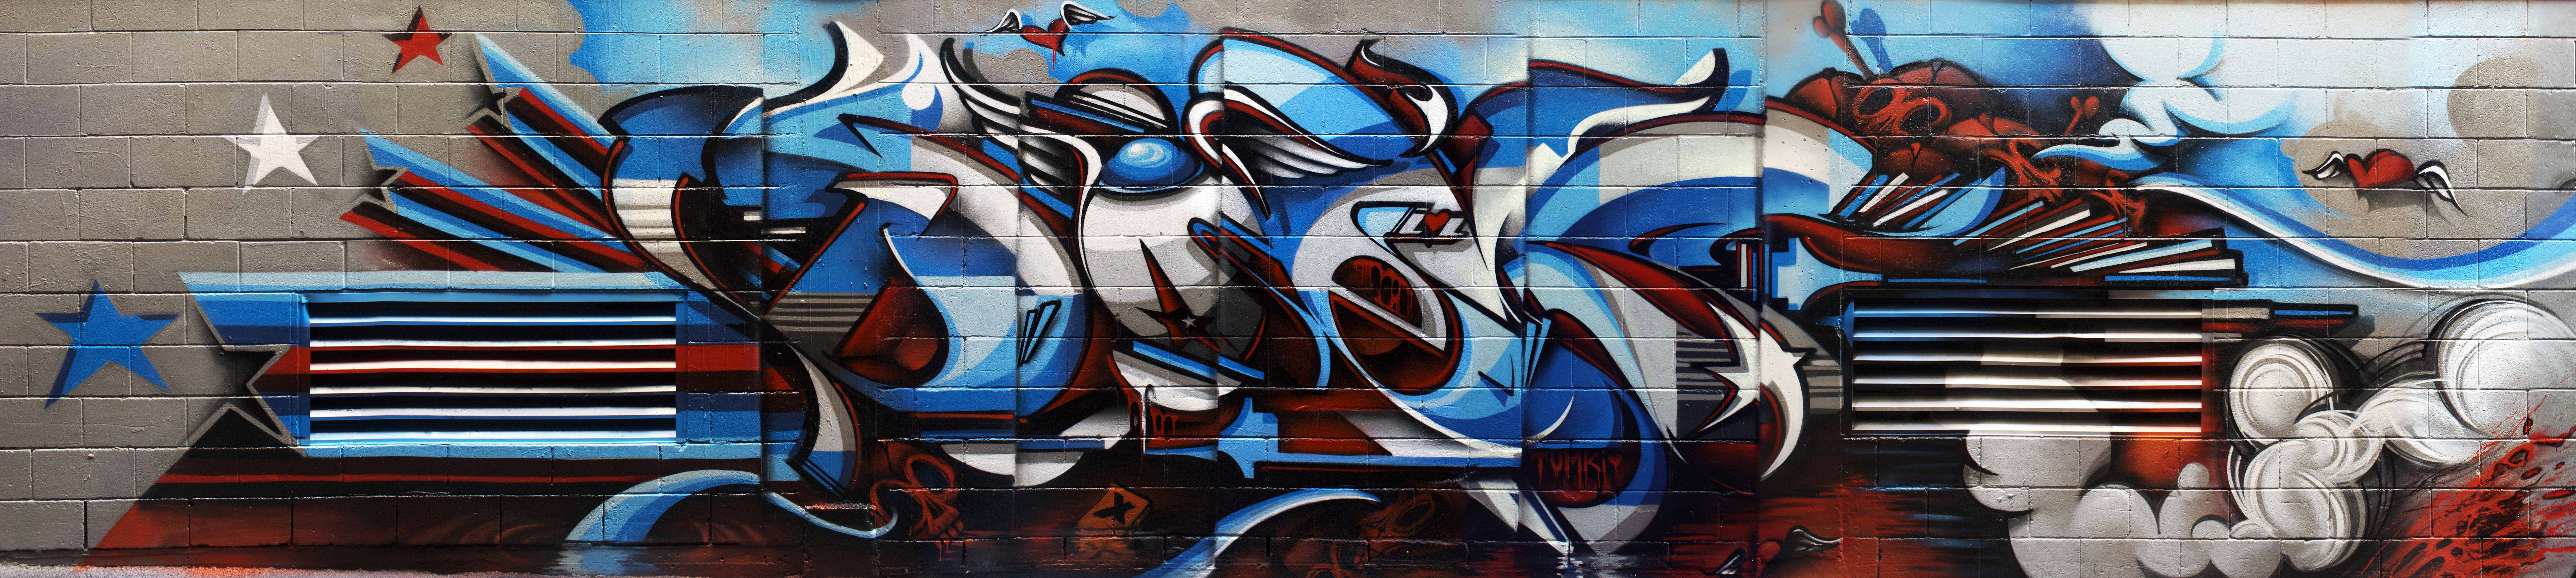 A work by Does - Does |Melbourne,Australia'11